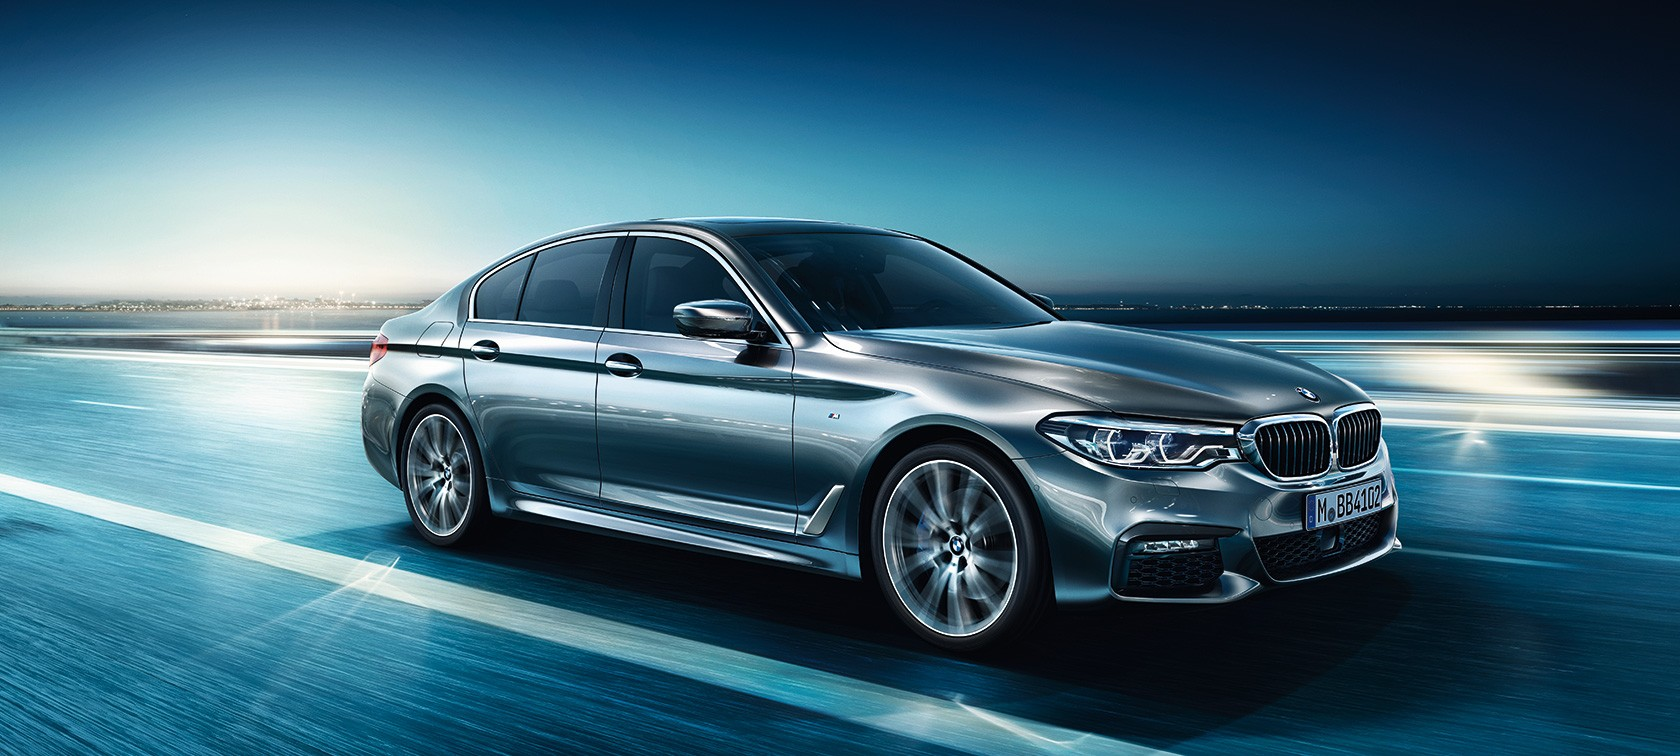 The all new bmw 5 series